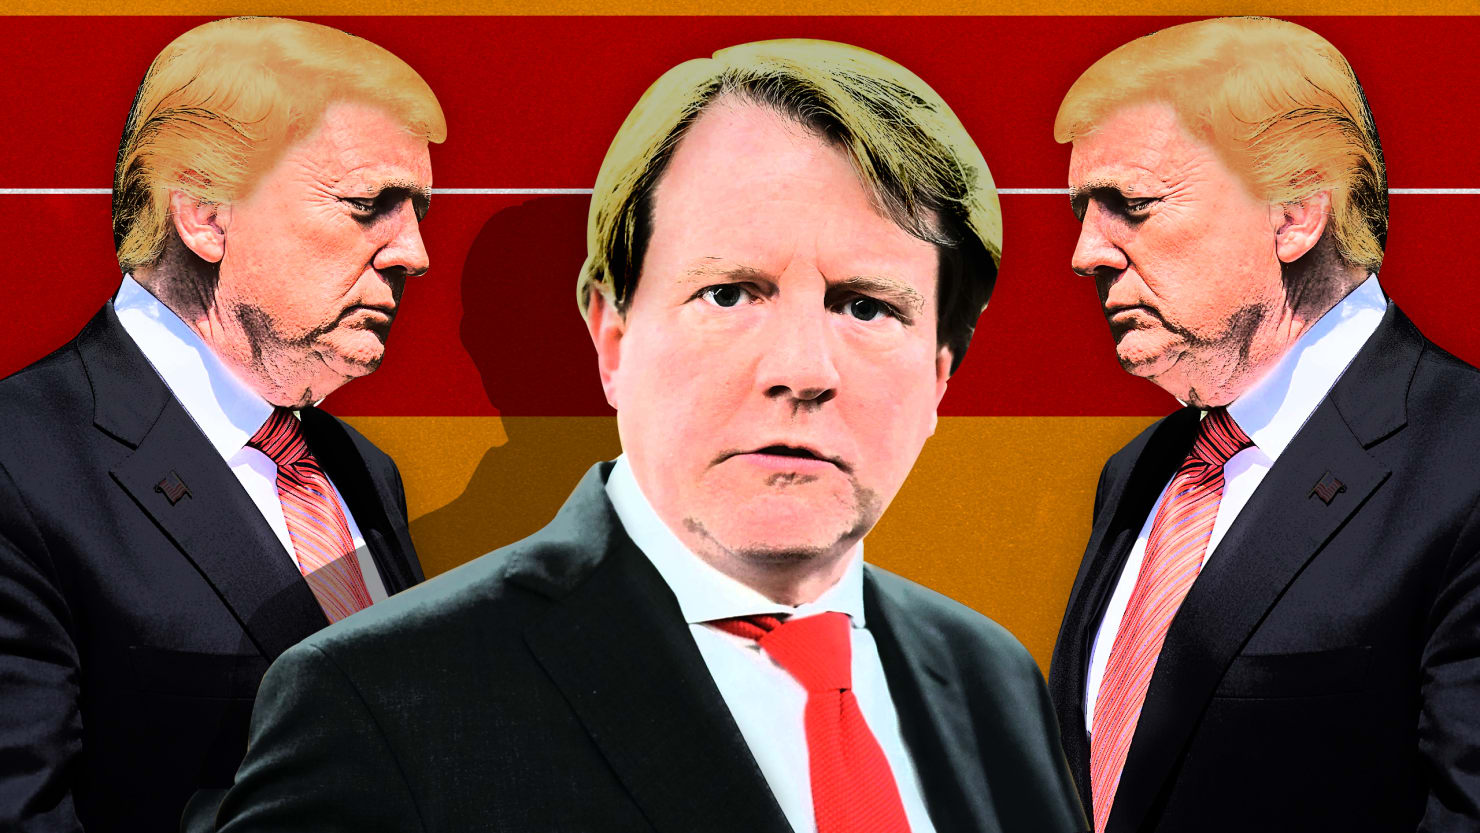 Image result for images trump mcgahn